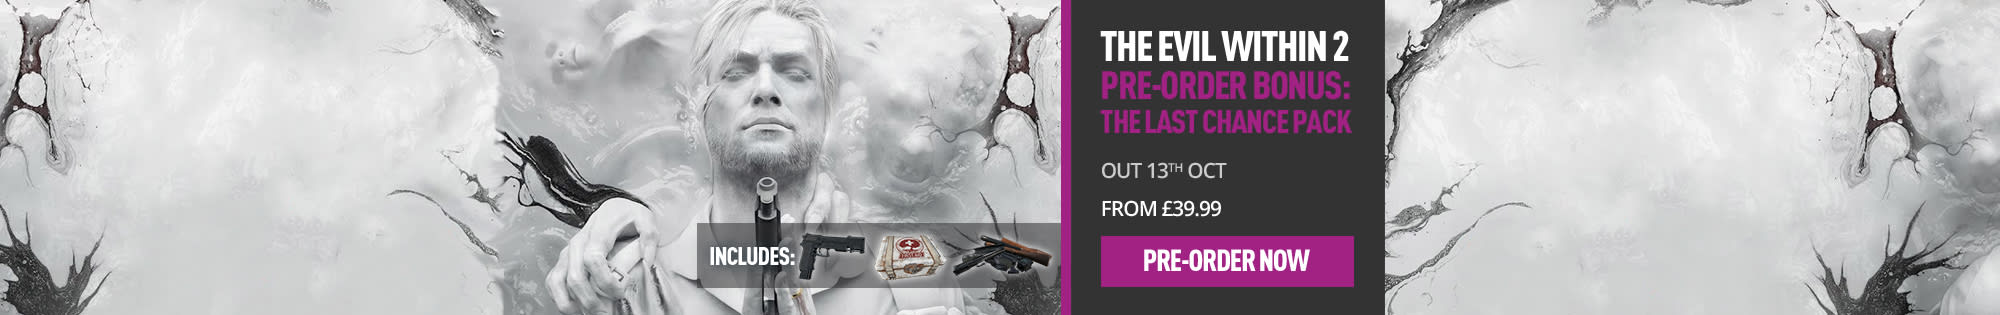 Pre-order The Evil Within 2 at GAME.co.uk - Homepage Banners